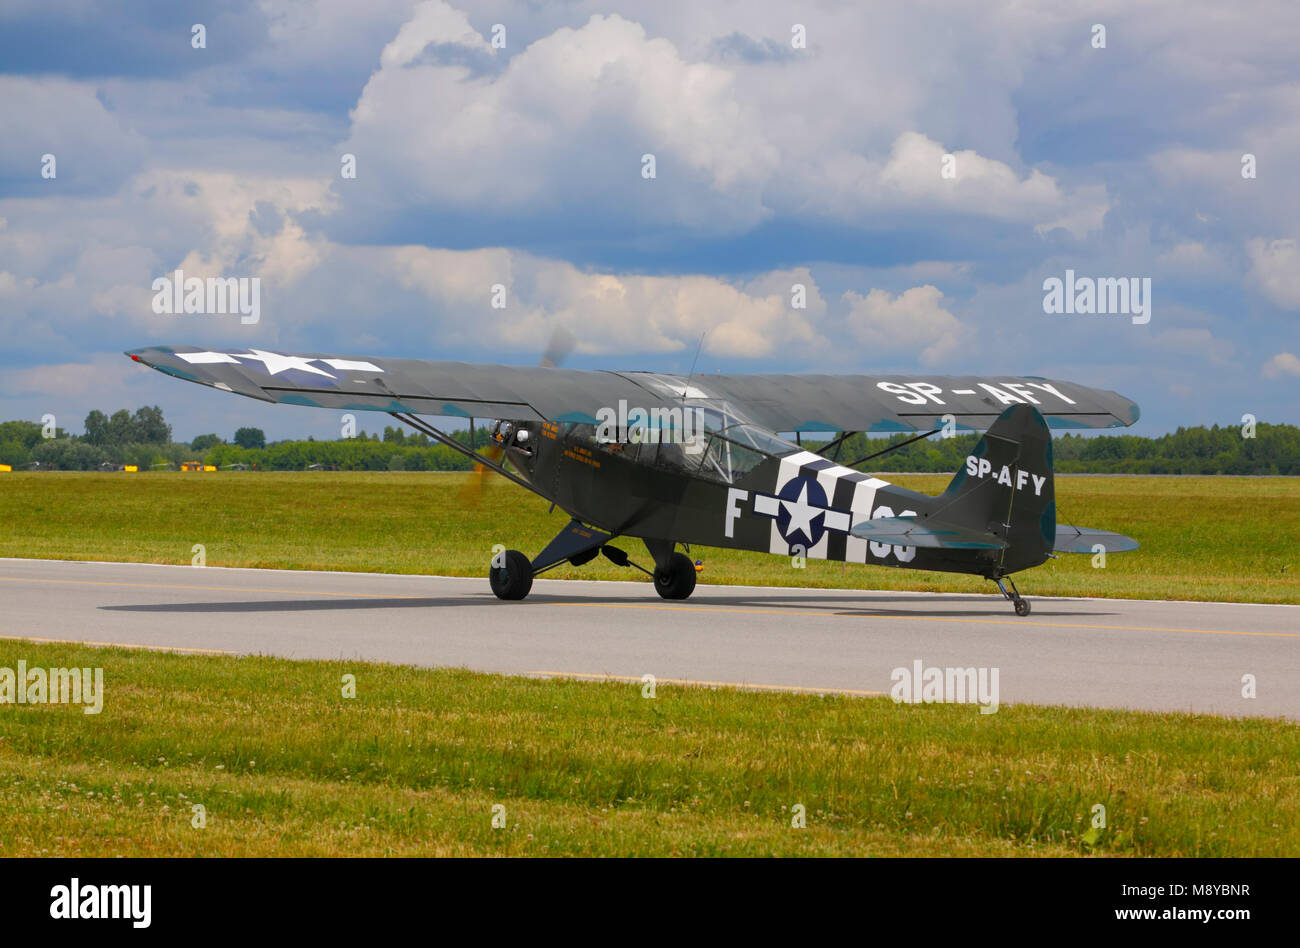 The Piper J-3 Cub (L-4 Grasshopper; military markings) on runway during International Air Show at the 90th Jubilee - Stock Image